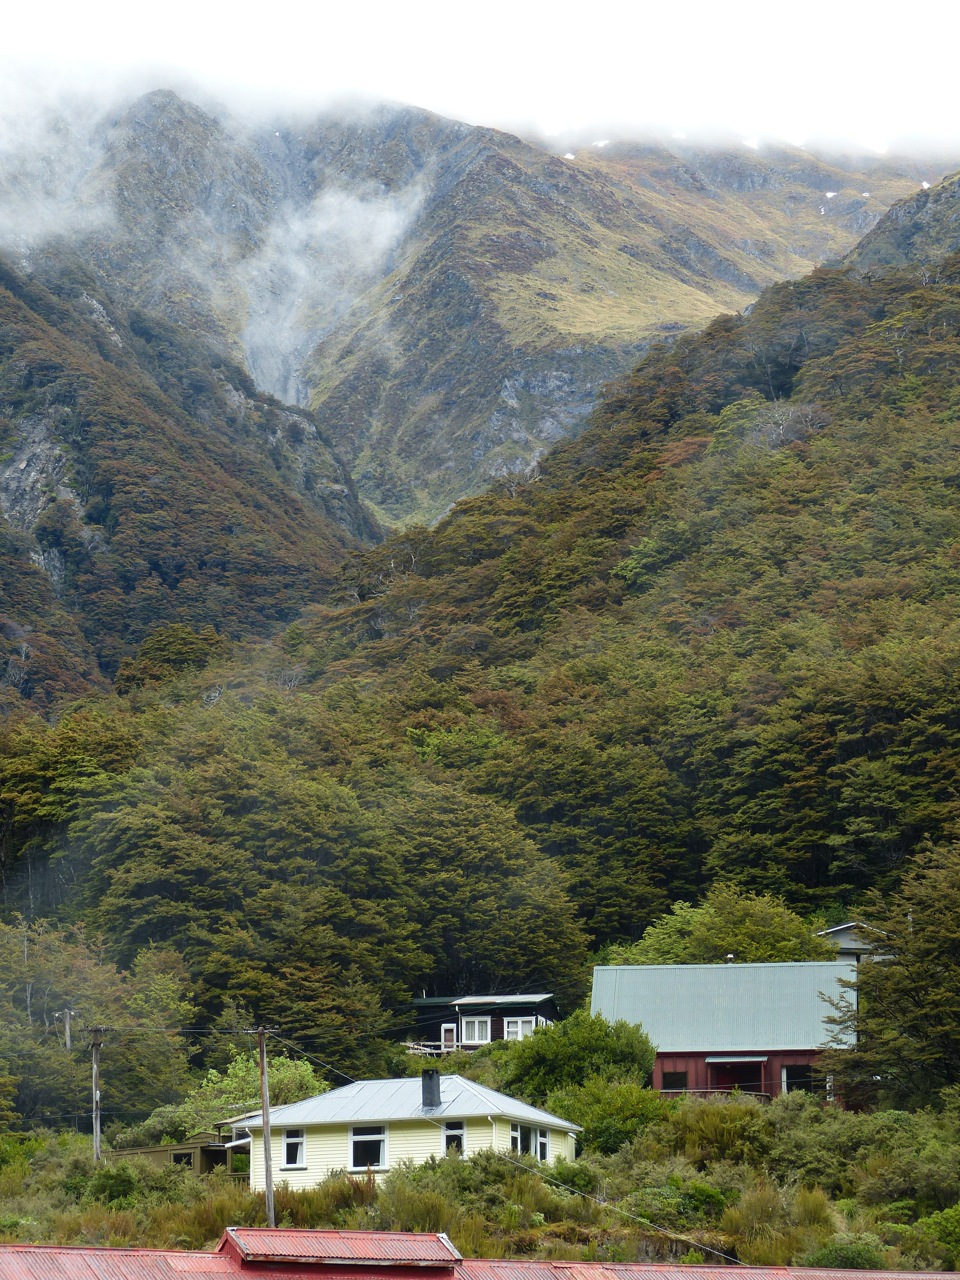 Arthurs Pass -- pass in the Southern Alps marking the separation between east and west